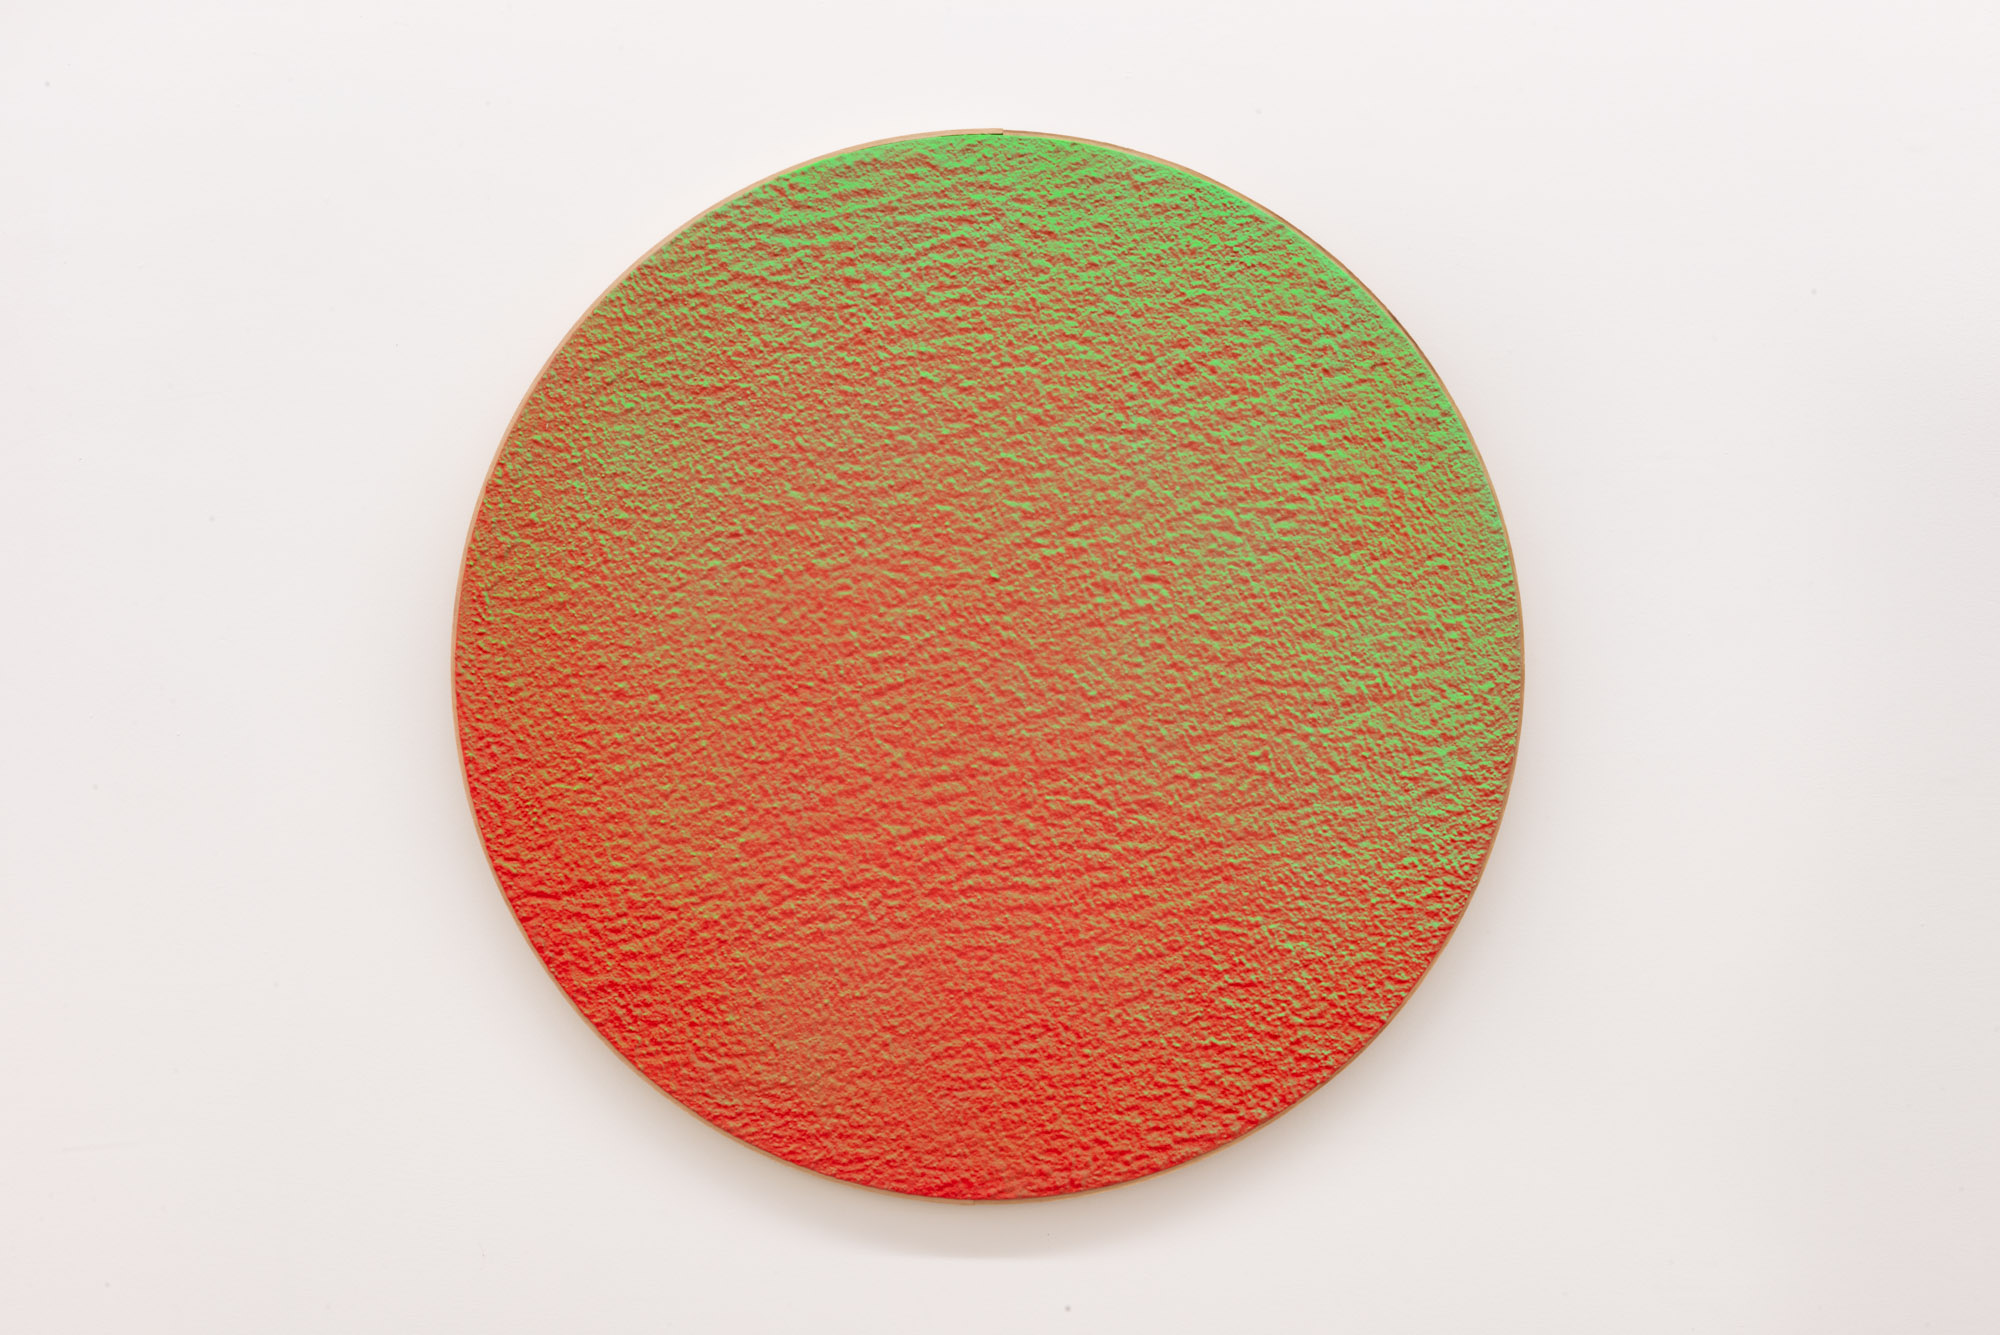 """Pierre Julien,  In the Deepest Oceans  - C005, 2018, stucco, acrylic and spray paint on wood panel, 30"""" diameter (76 cm)"""